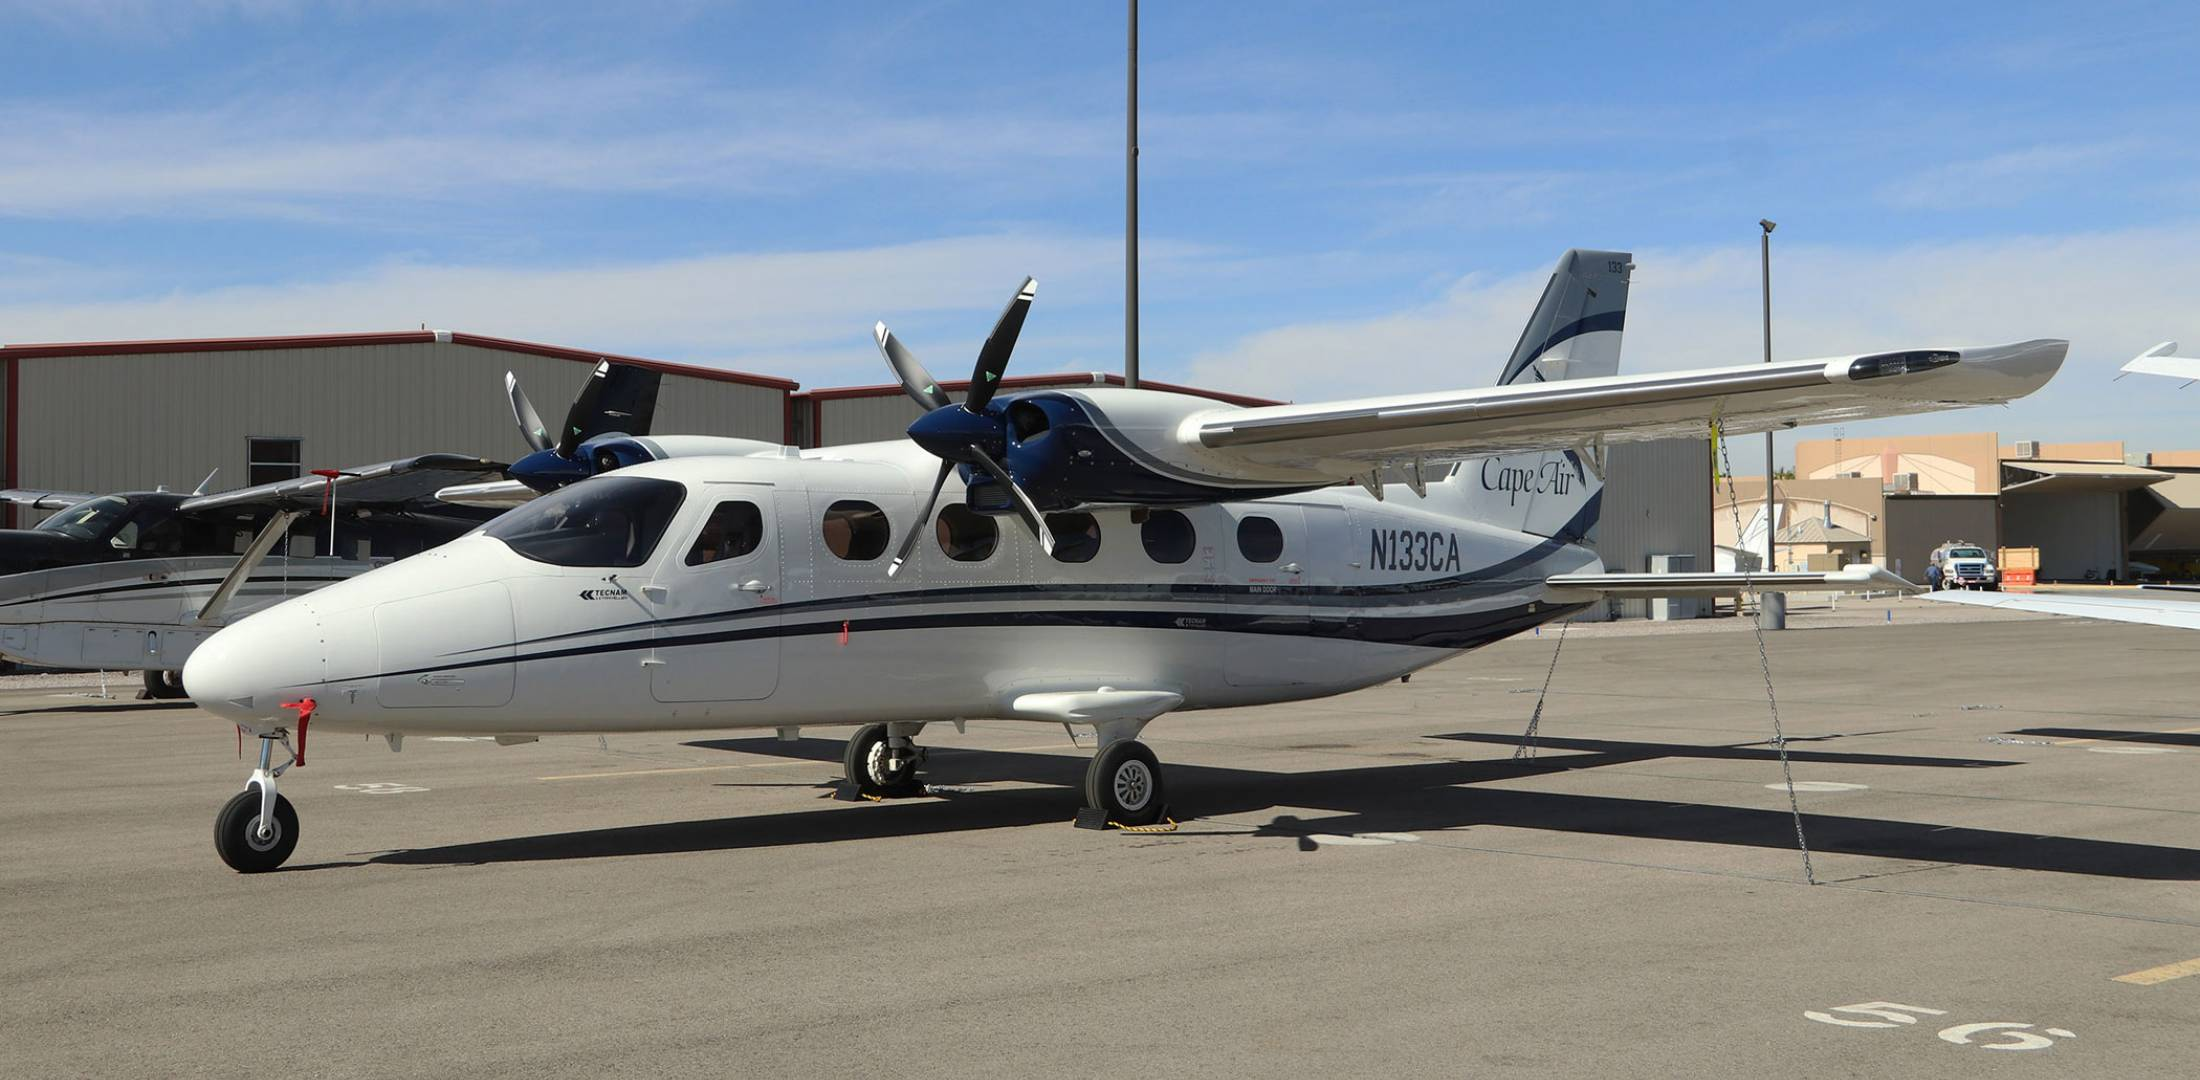 twin-engine P2012 commuter aircraft. Photo: Barry Ambrose